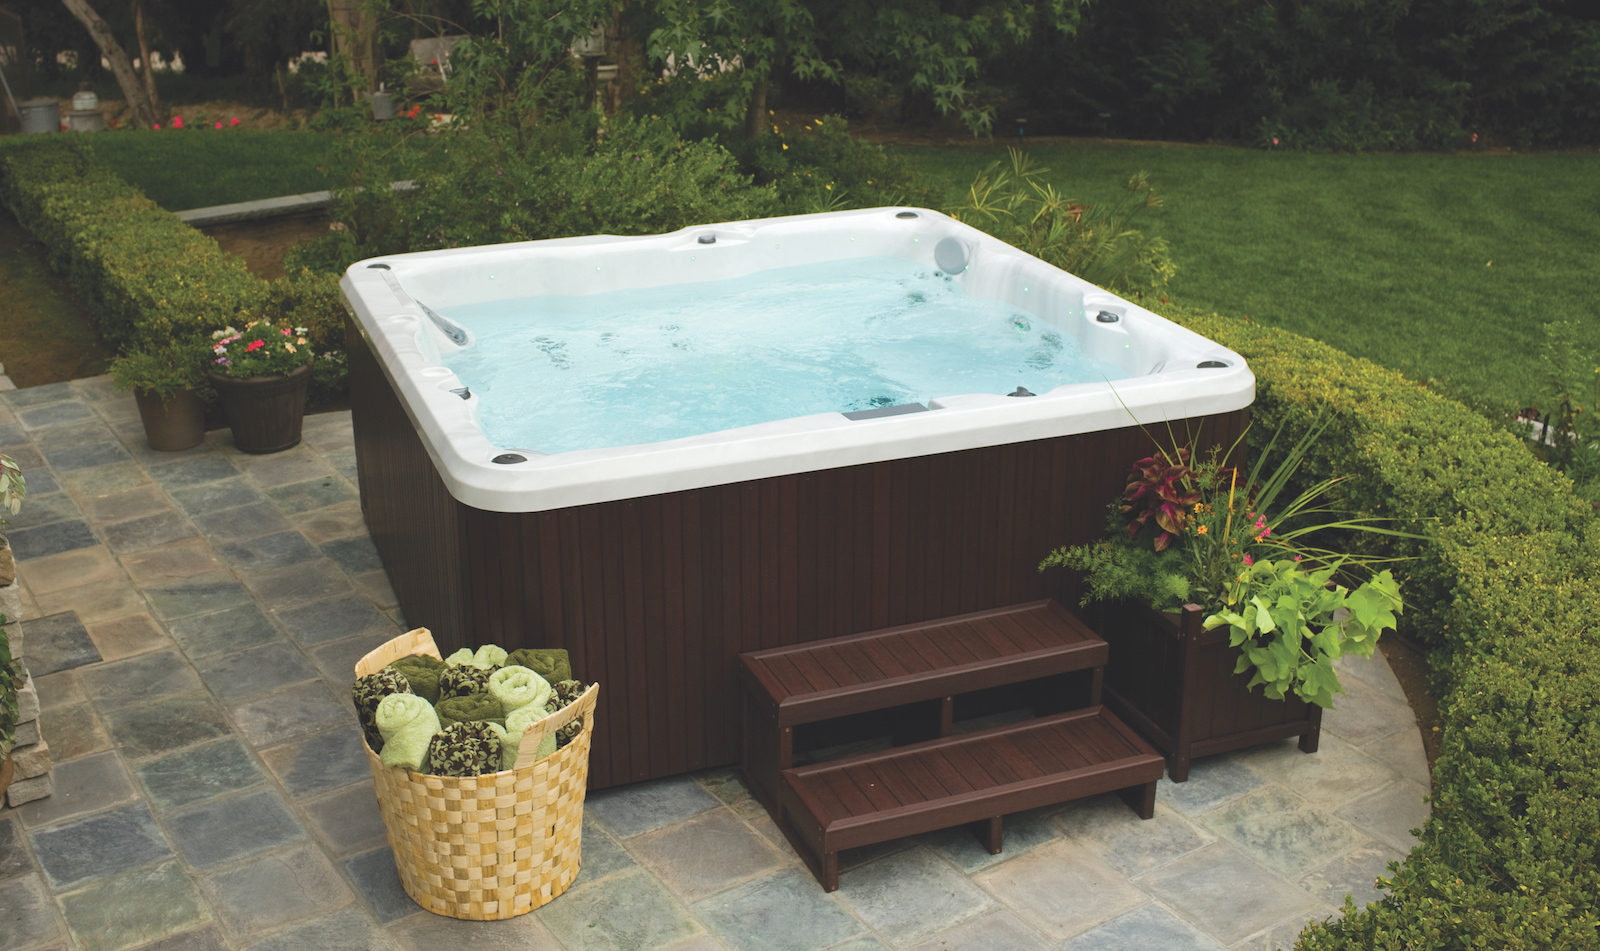 How to Drain and Clean Your Hot Tub Zagers Pool & Spa